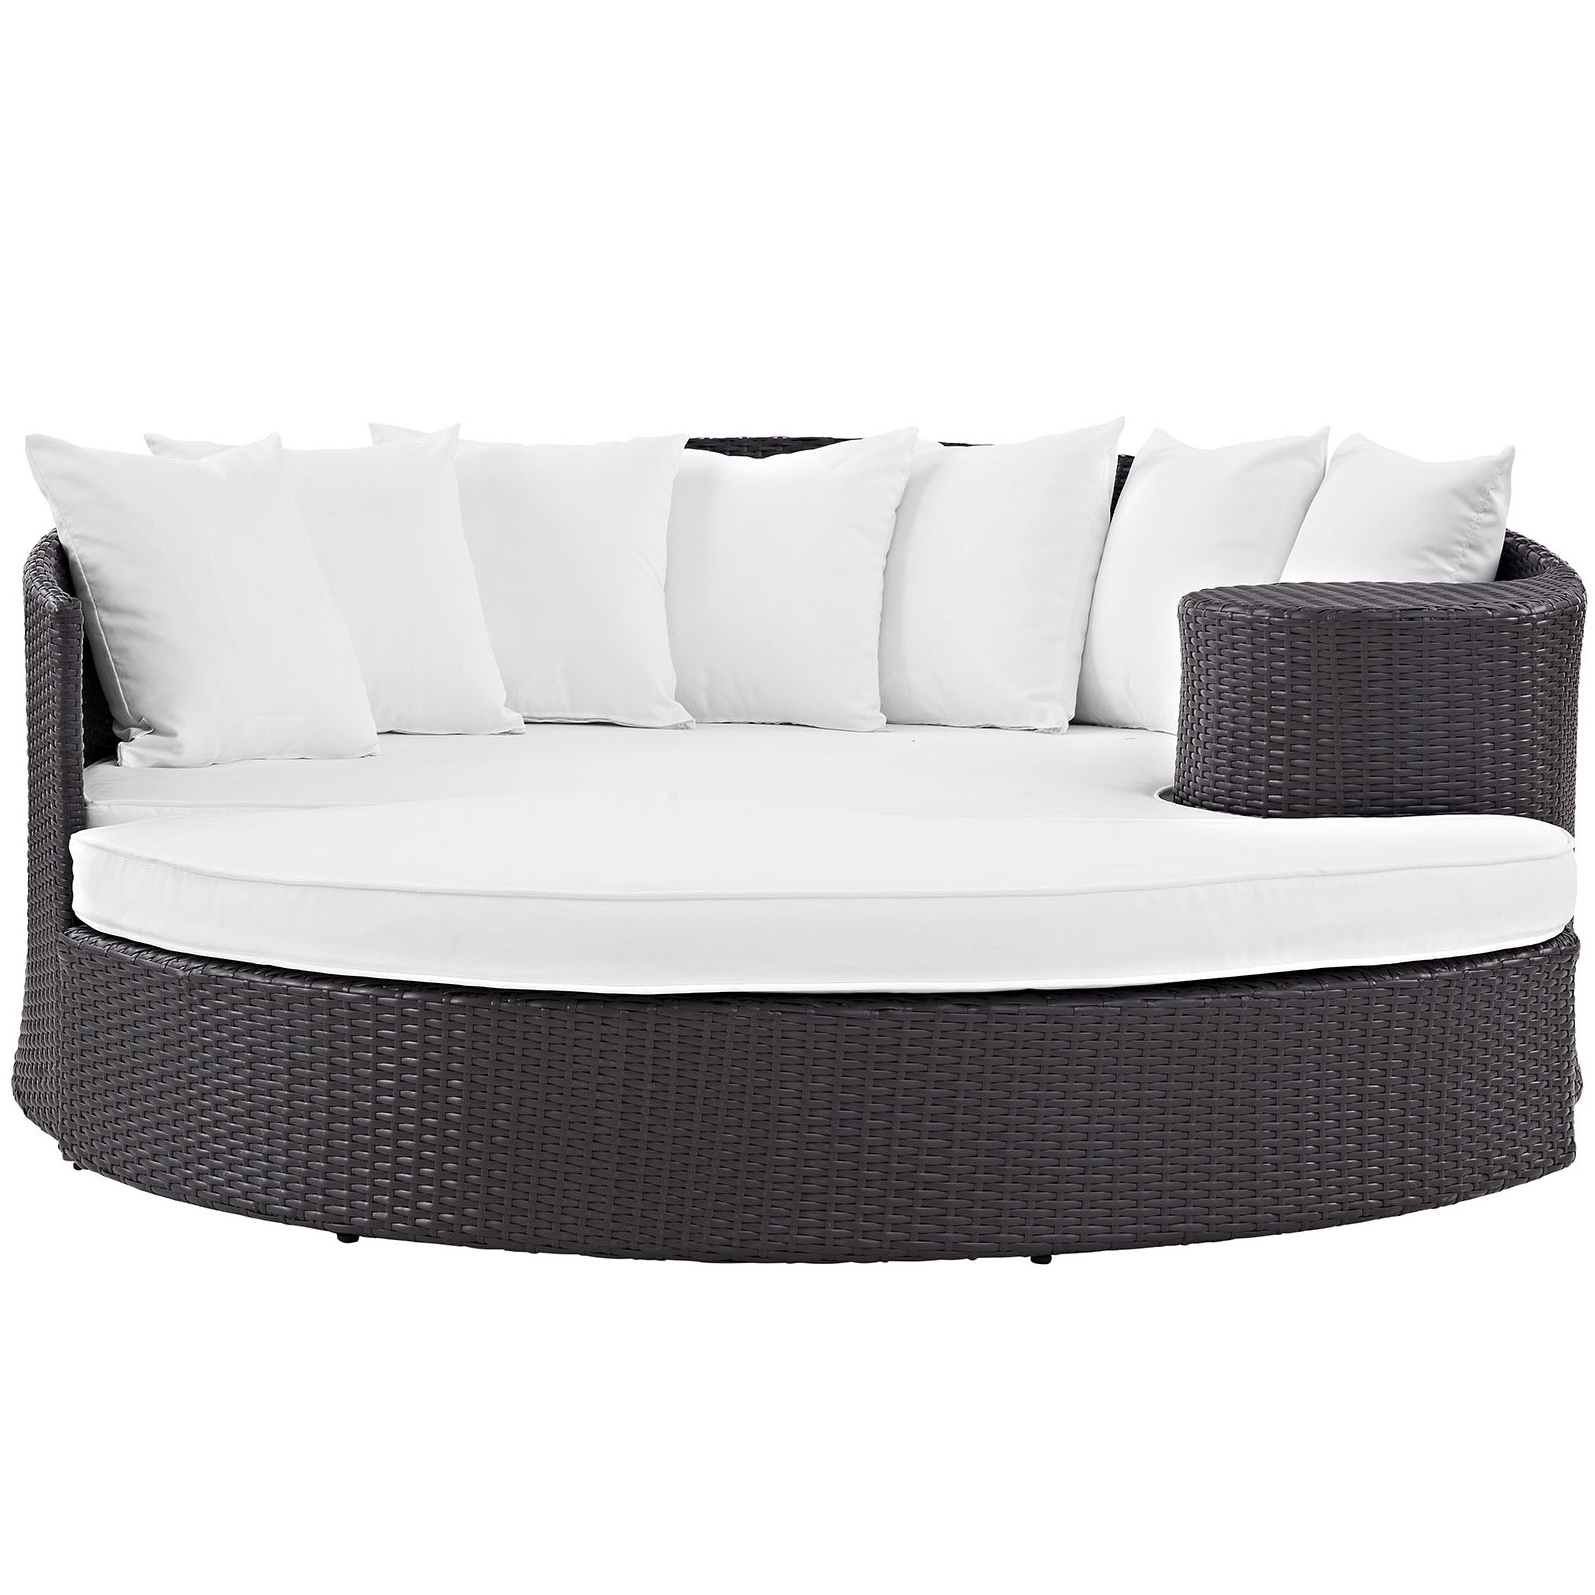 Olu Bamboo Large Round Patio Daybeds With Cushions With Trendy Brentwood Patio Daybed With Cushions (View 7 of 20)